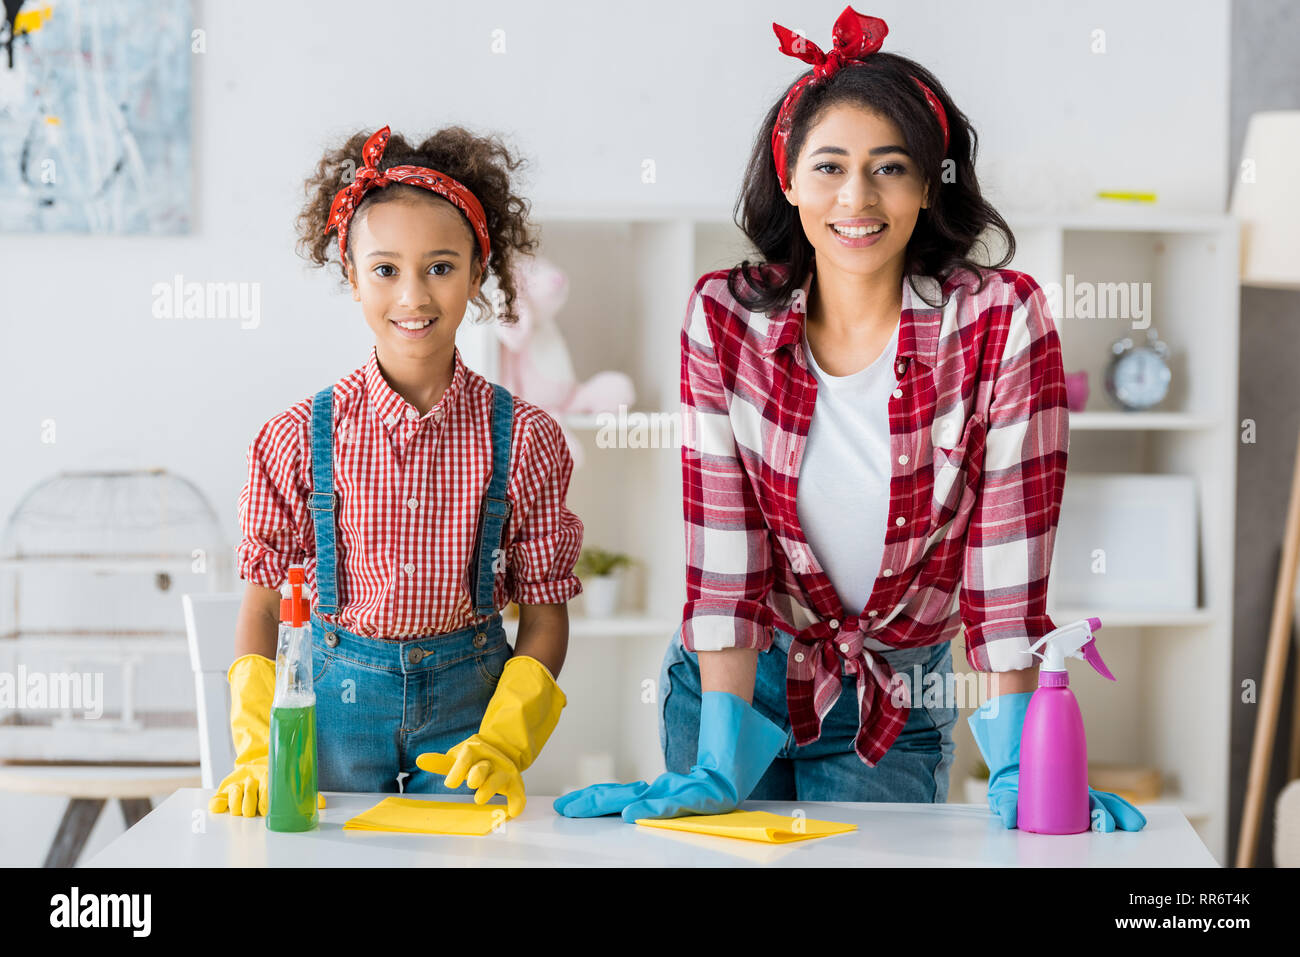 happy african american mother with adorable daughter in bright rubber gloves and spray bottles cleaning house - Stock Image